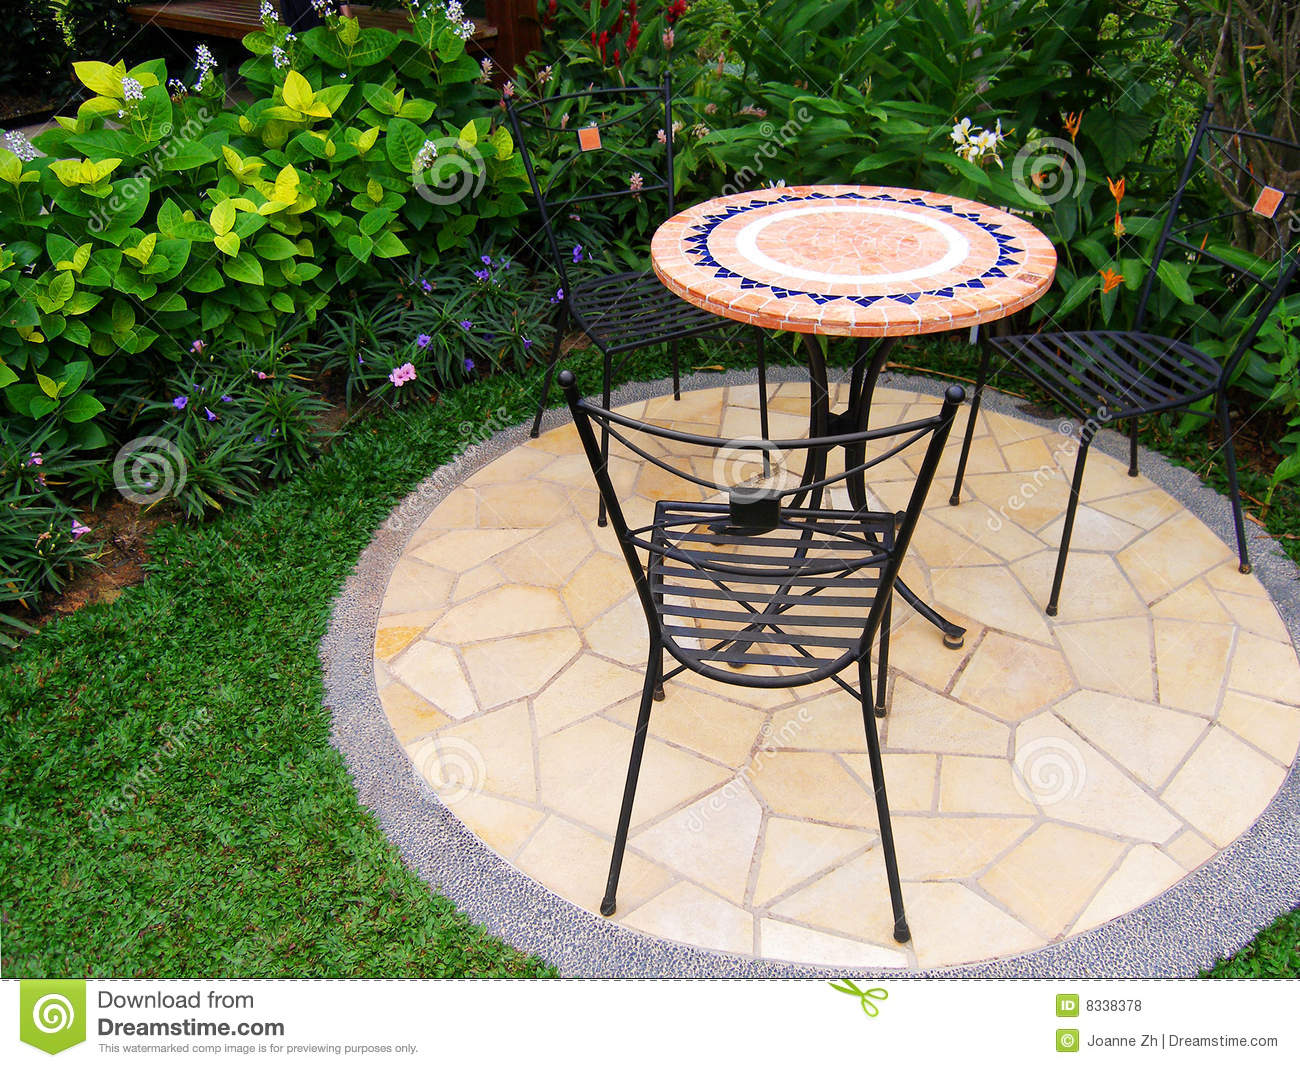 Outdoor Patio Design Pictures Pretty Garden With Paving And Furnitures Stock Photo